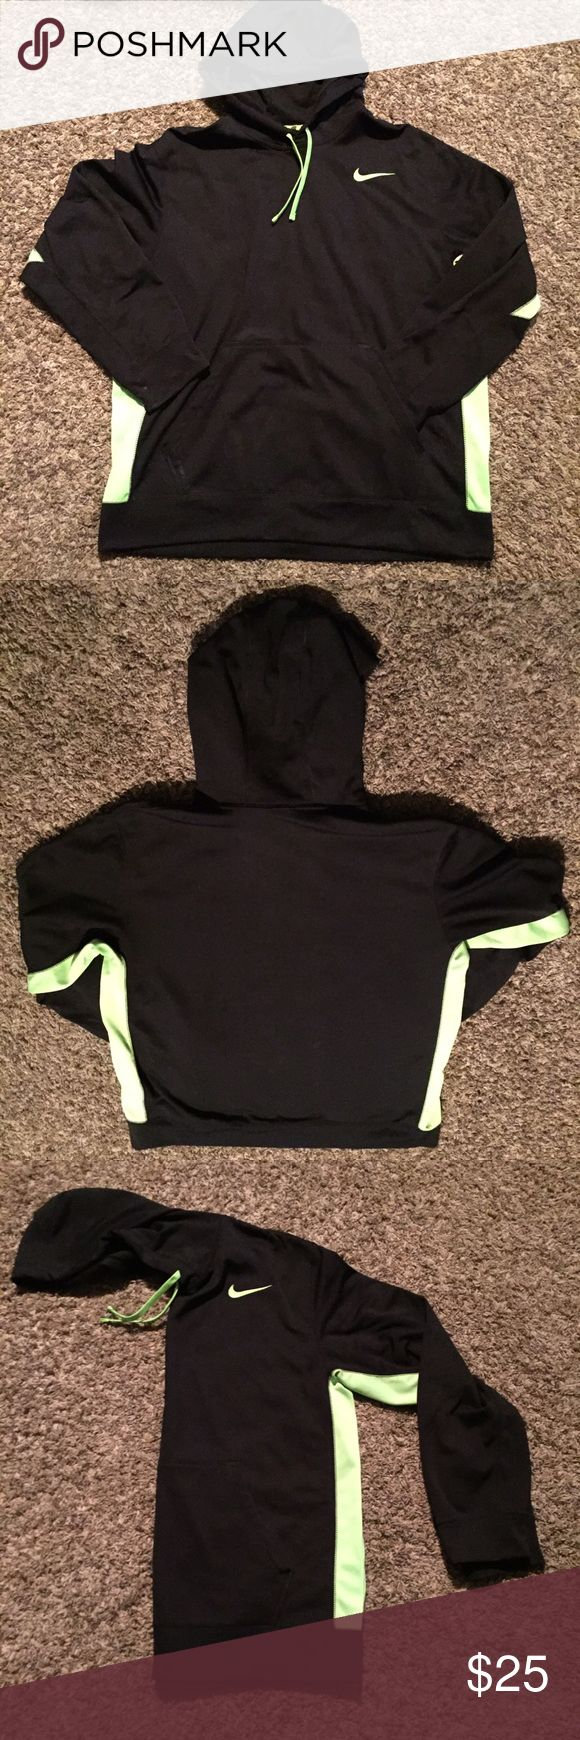 Nike Fleece Hoodie Nike therma-fit hoodie. Black with contrasting neon green, men's extra large. Great condition, no tears or snags Nike Jackets & Coats Performance Jackets